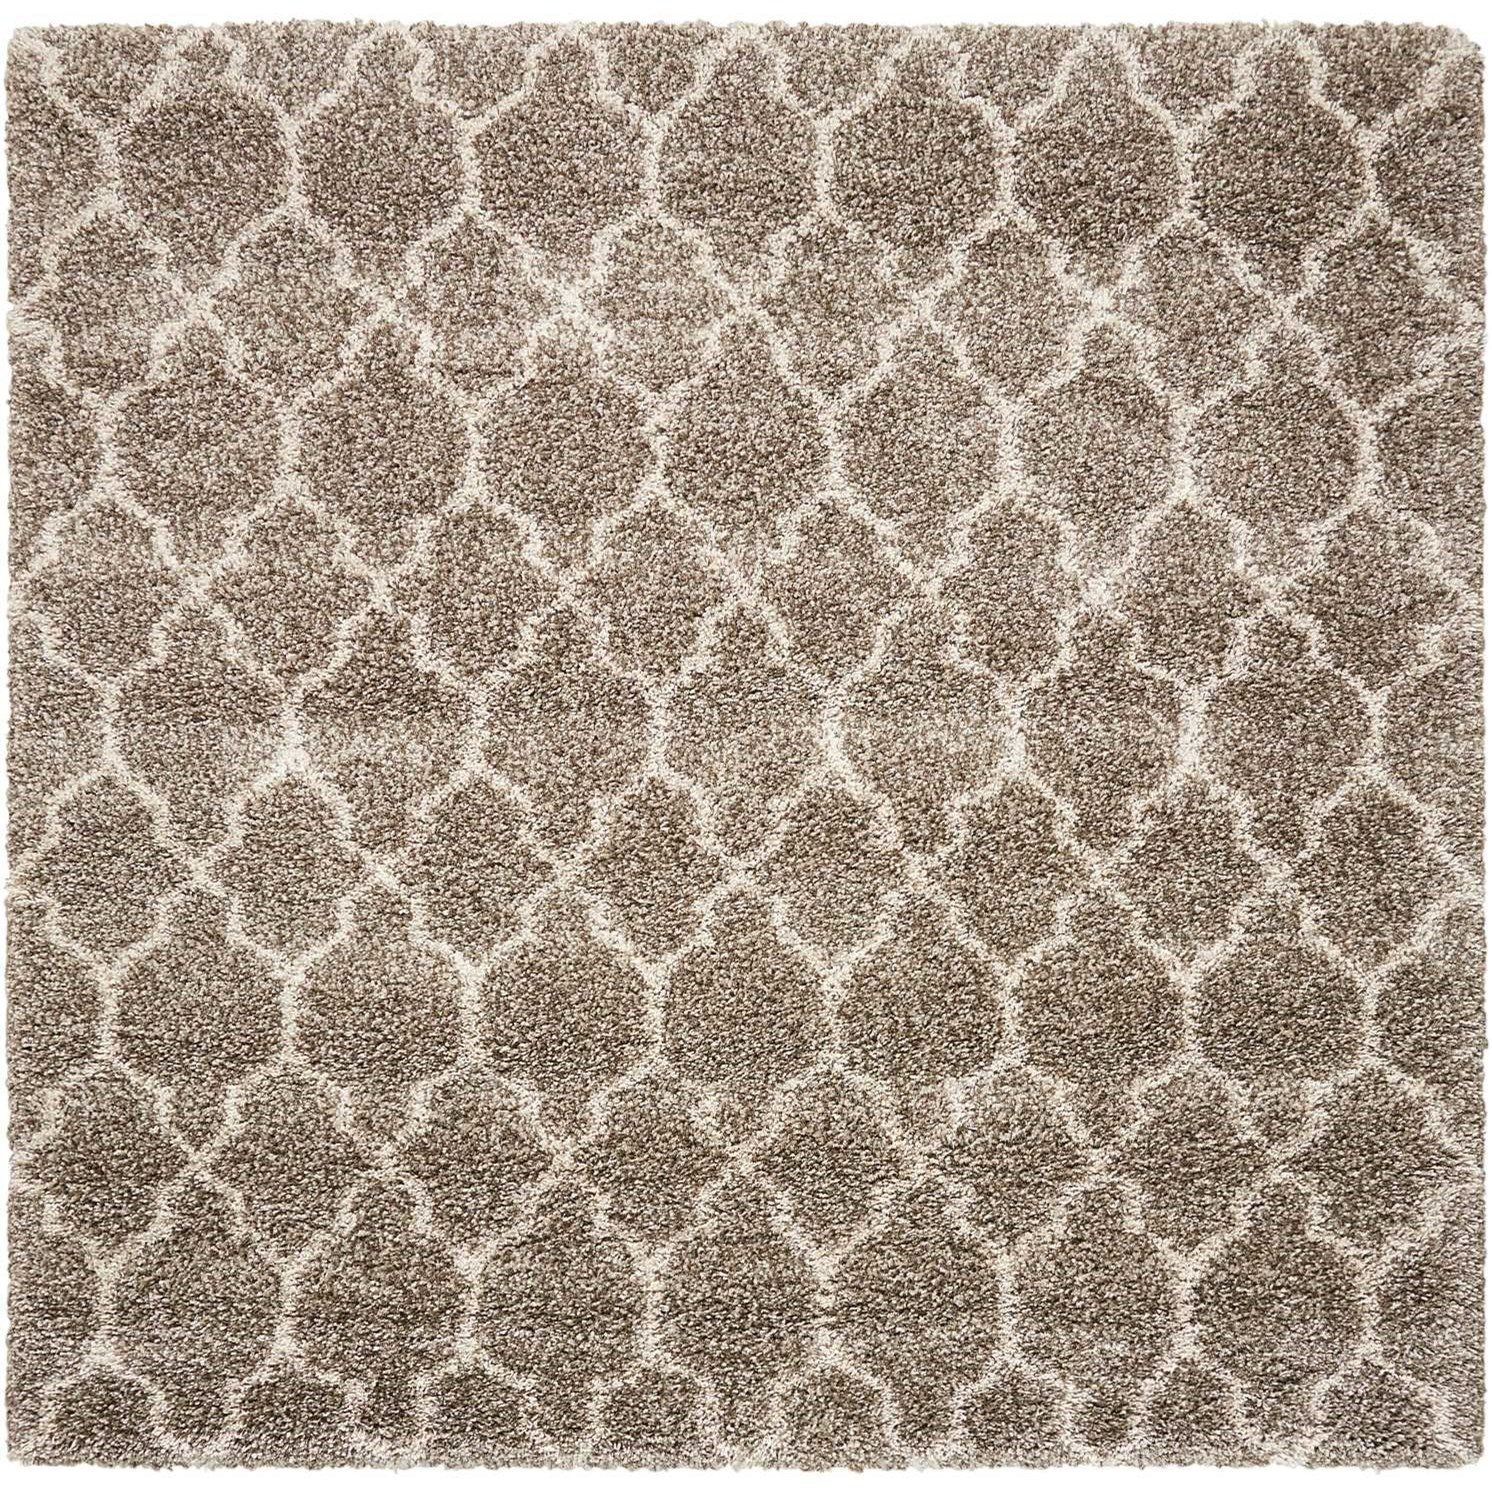 Amore Amore AMOR2 Beige 7' Square   Rug by Nourison at Home Collections Furniture